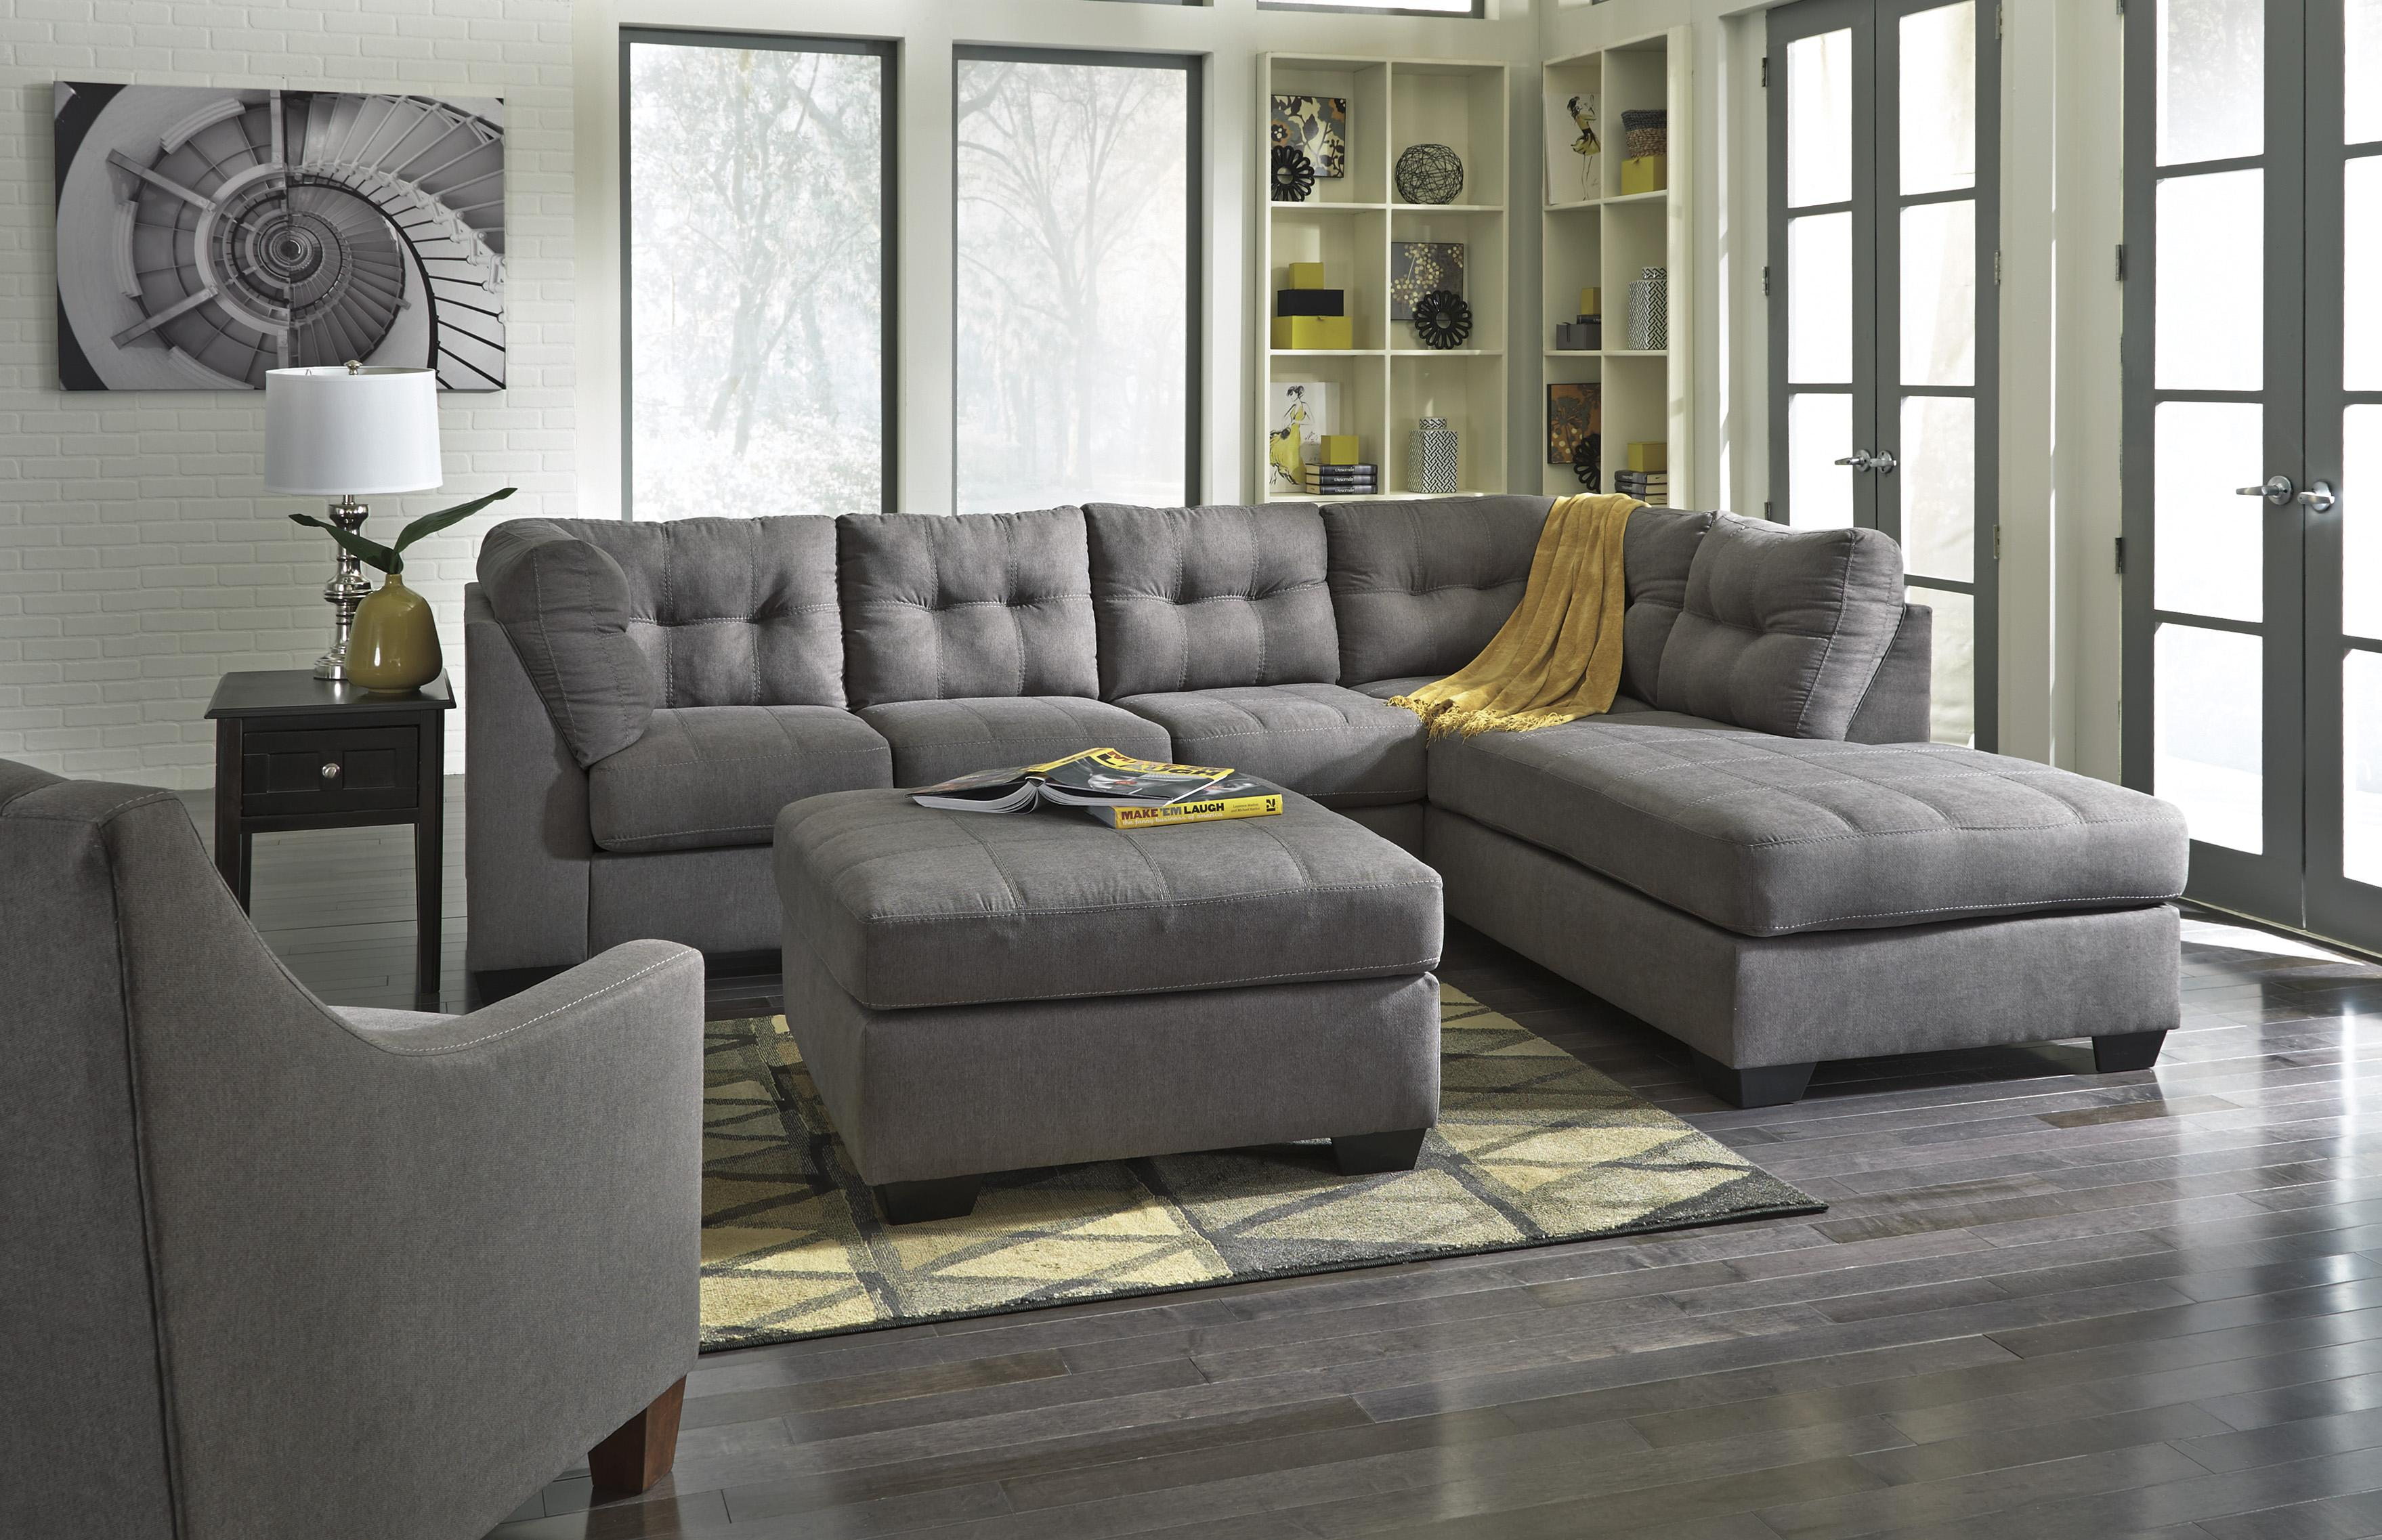 Benchcraft Maier - Charcoal Stationary Living Room Group - Item Number: 45200 Living Room Group 3